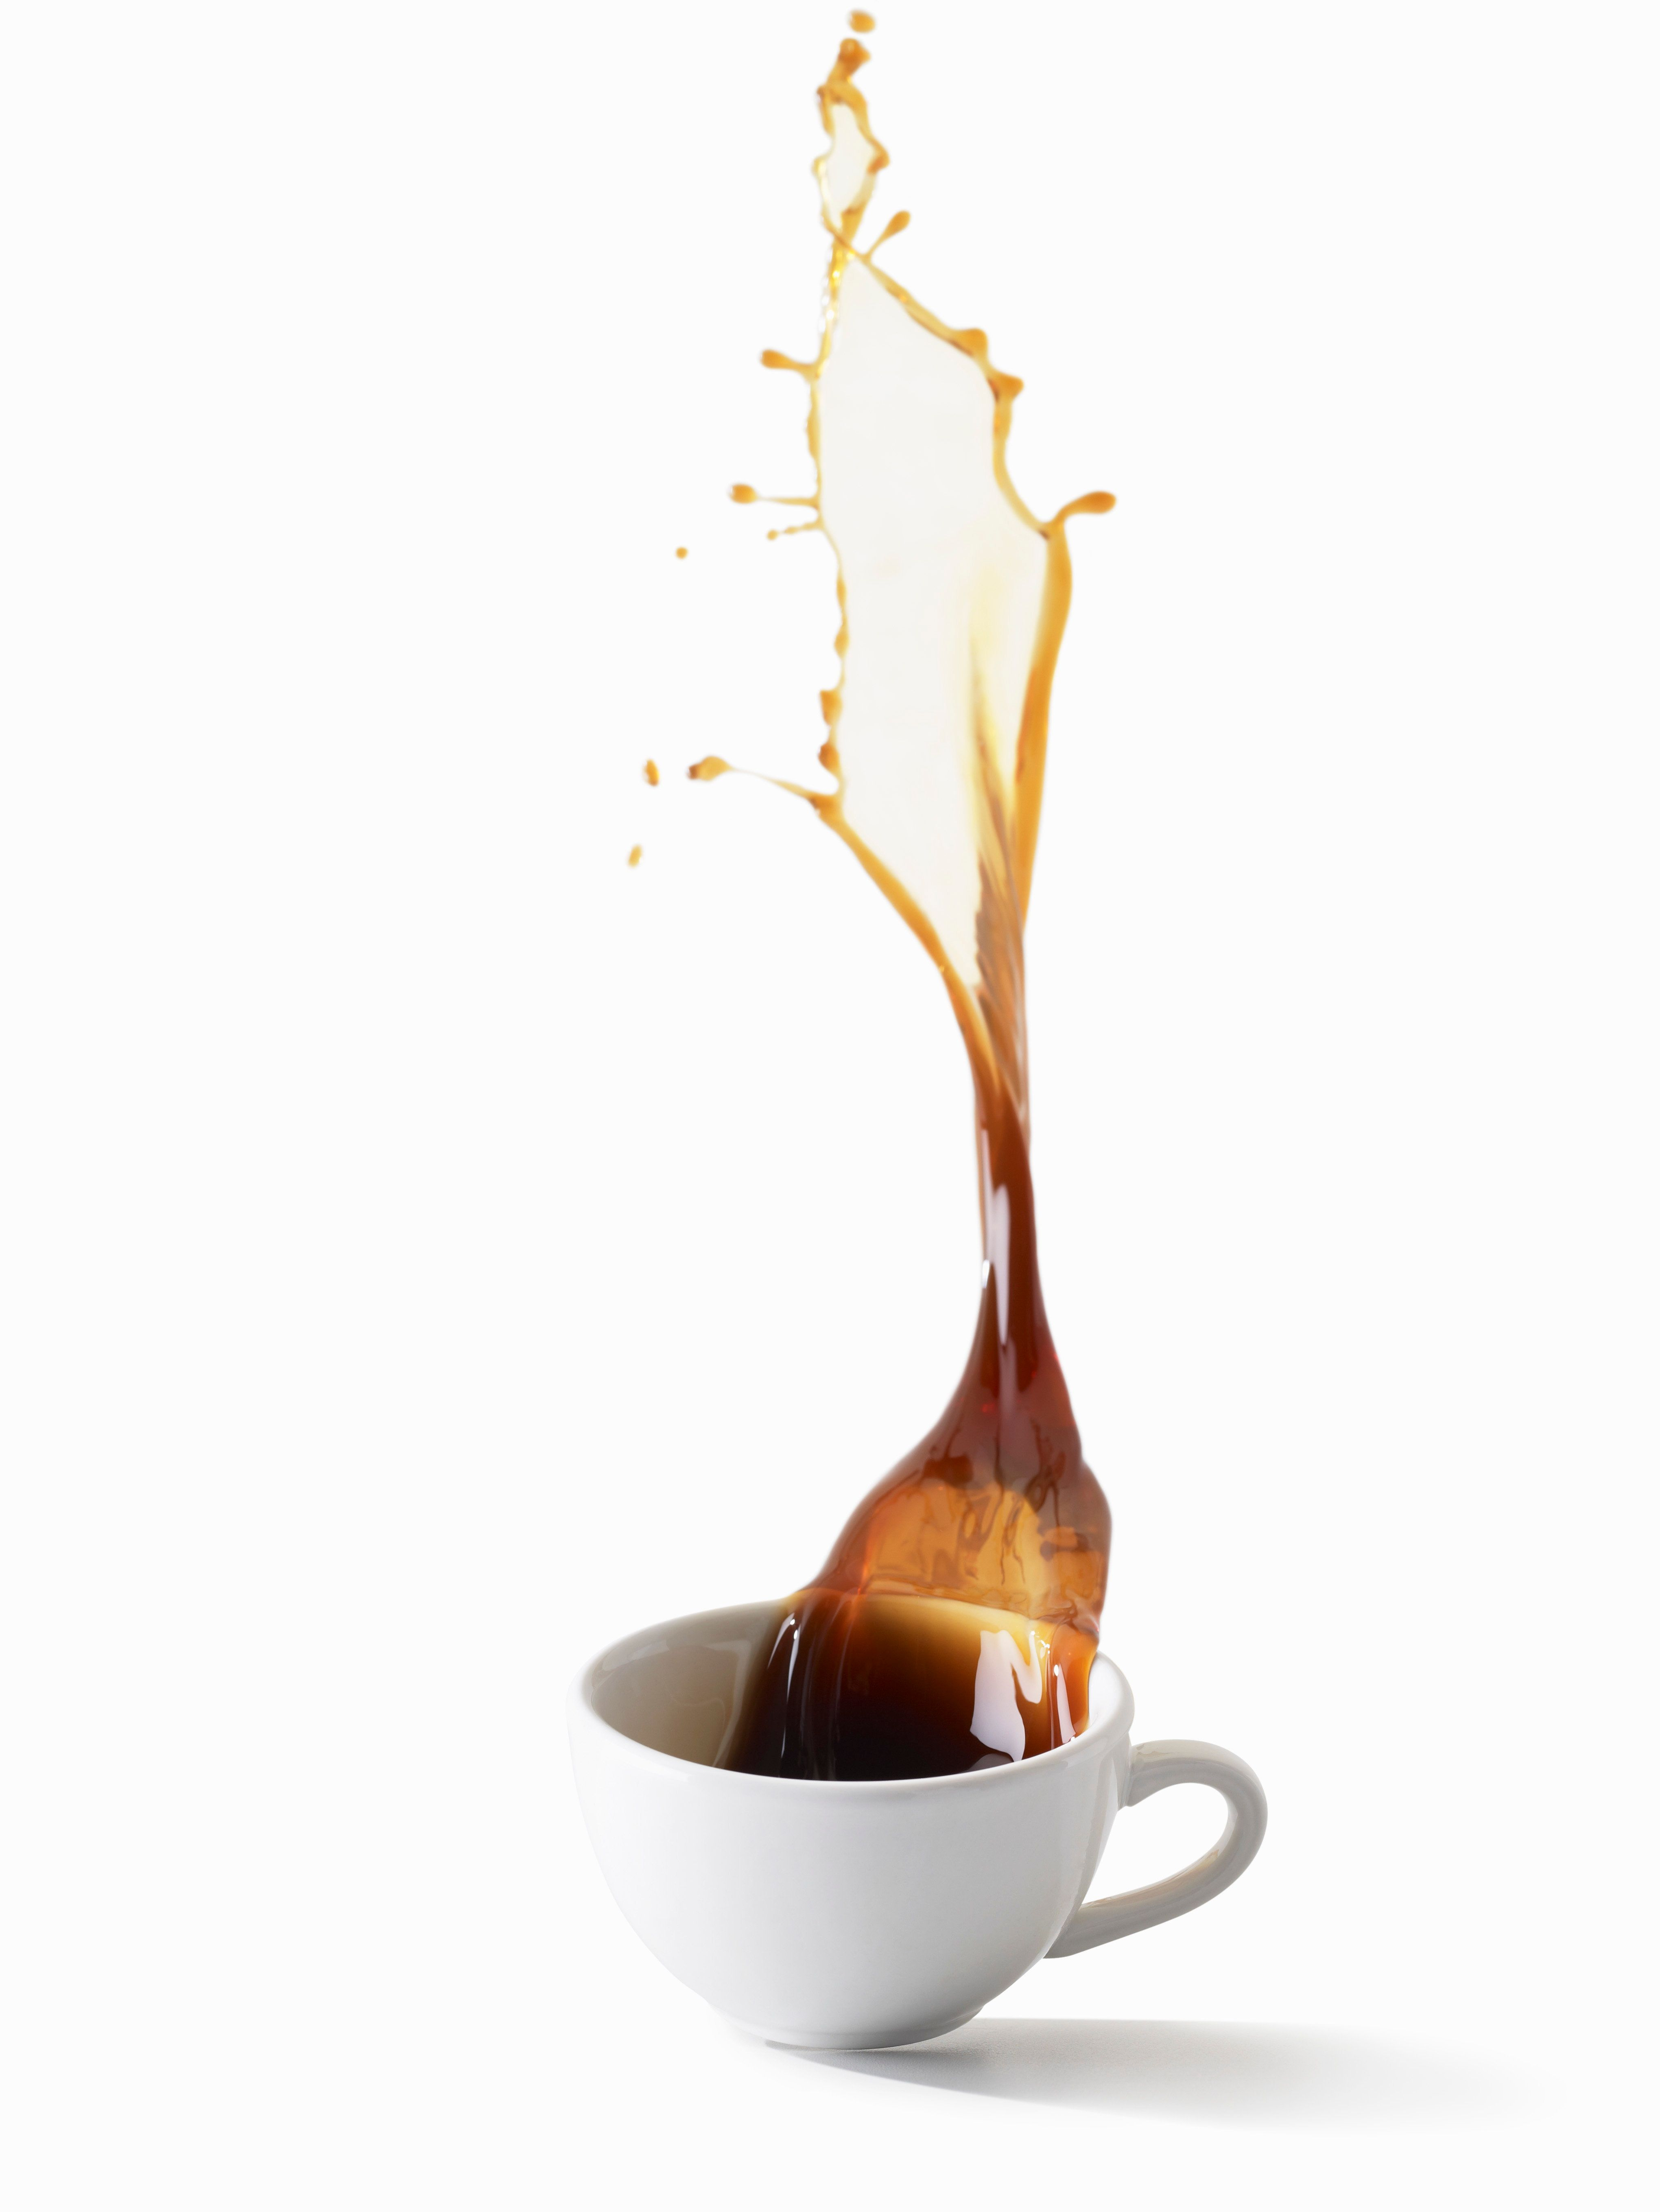 Coffee Spilling out of Coffee Cup